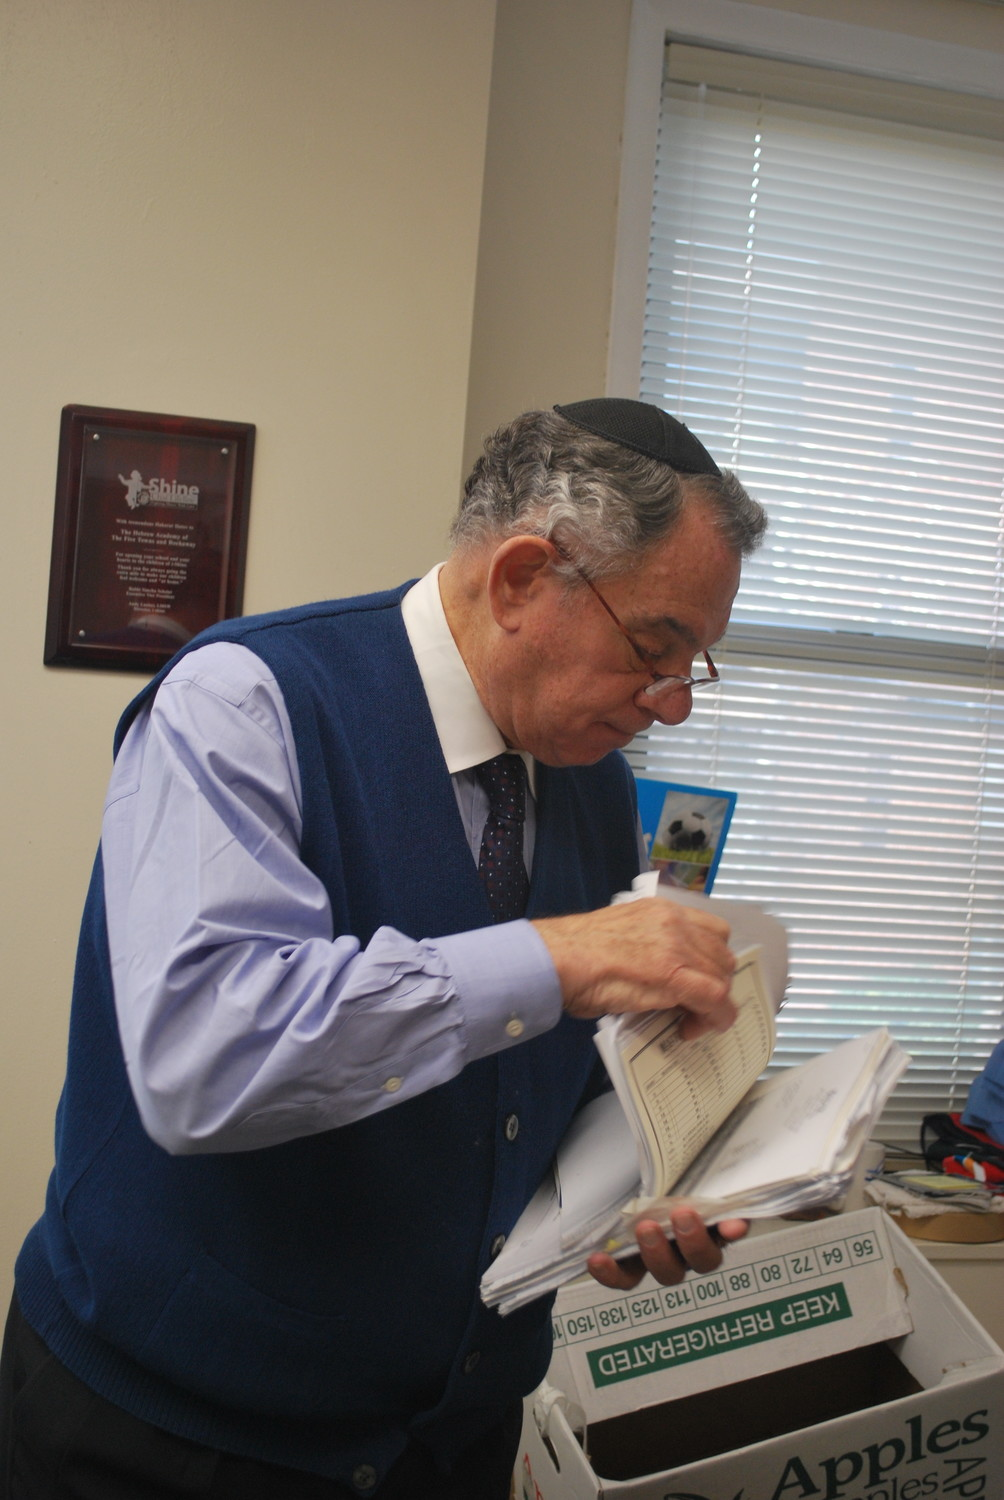 Two days before Reuben Maron retired as executive director of HAFTR on Dec. 31, he was busy cleaning out his office.